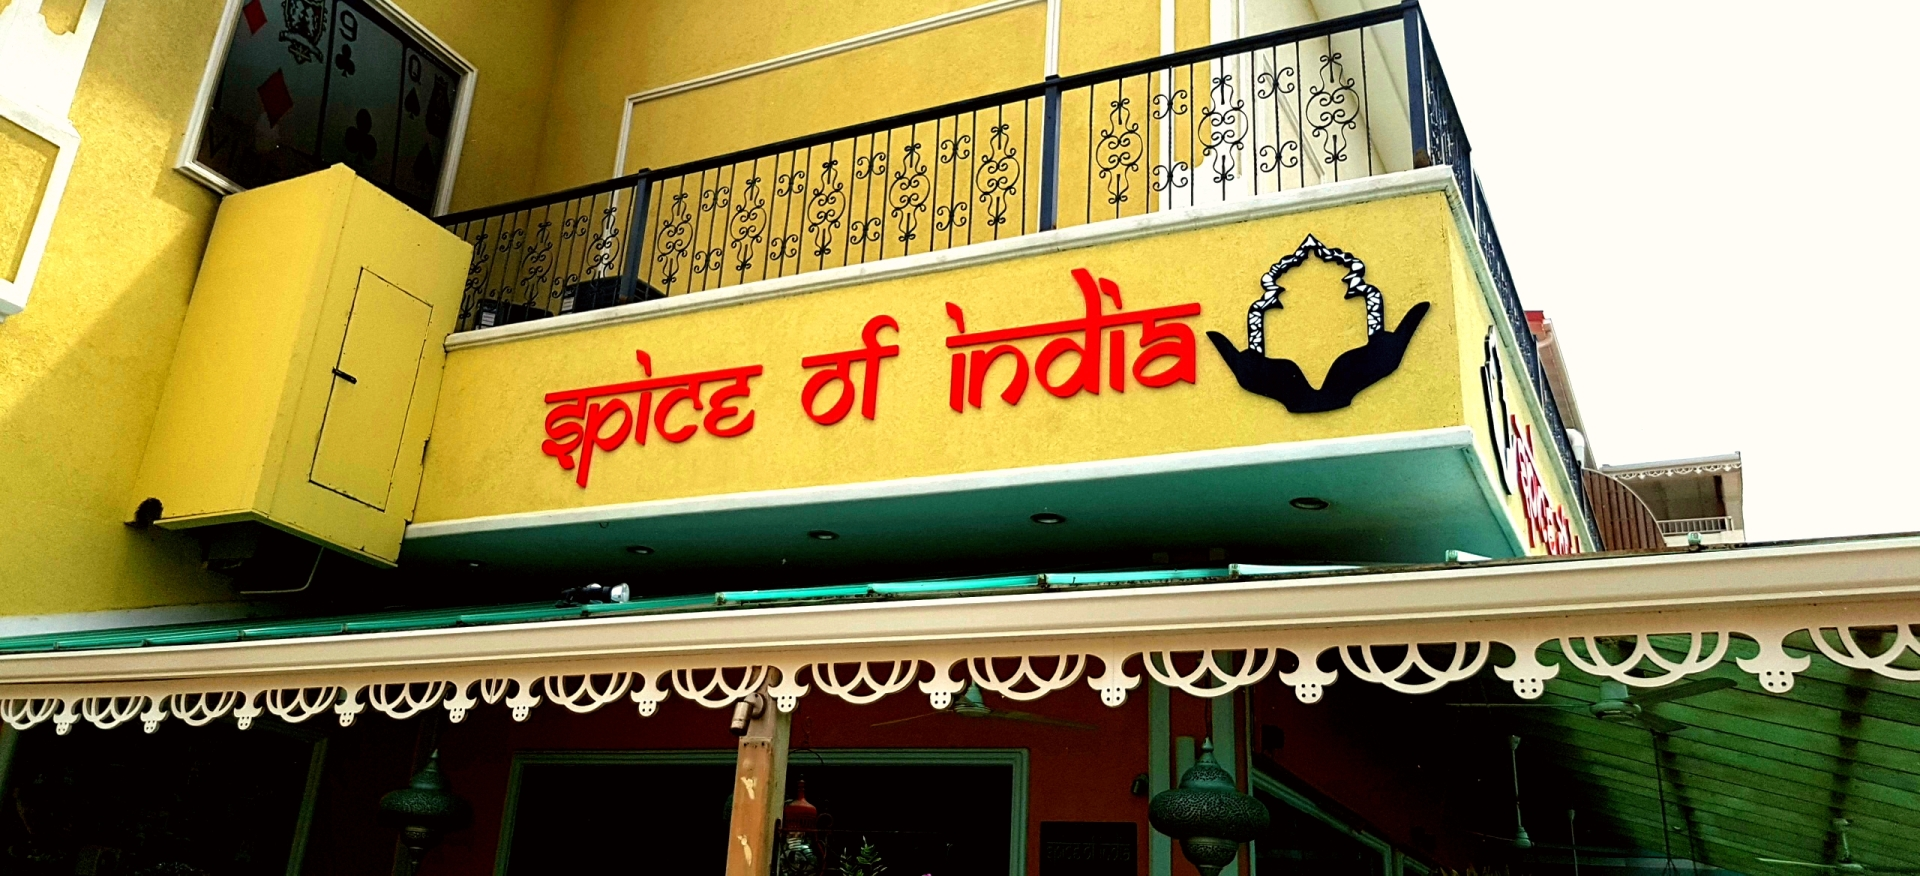 Spice of India PasBesoinDavoirFaimPourManger.com.jpg